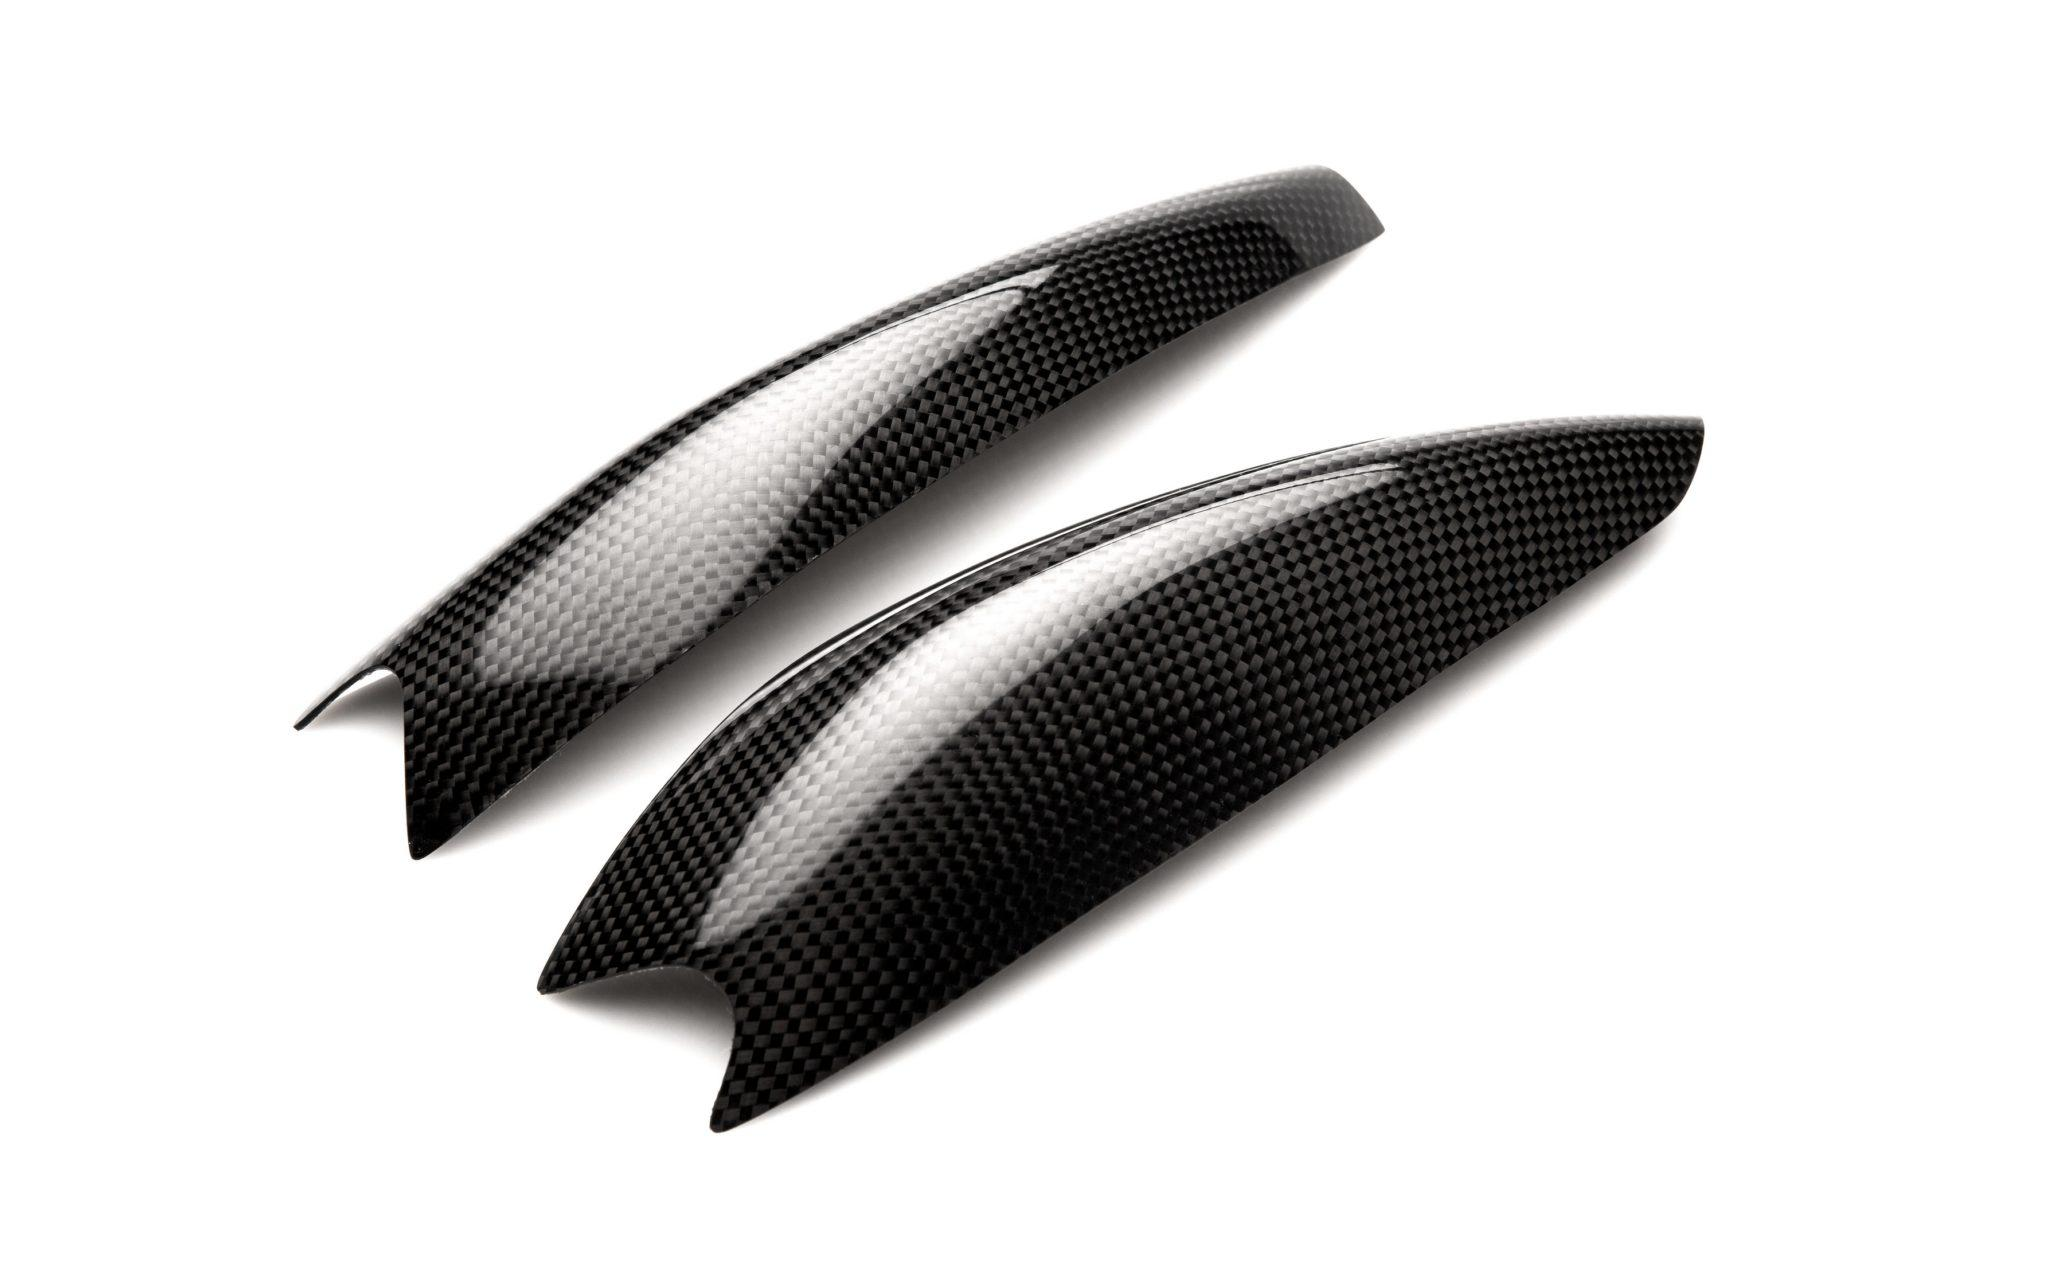 suzuki gsx s 1000 2015 2018 carbon fiber tank sliders. Black Bedroom Furniture Sets. Home Design Ideas